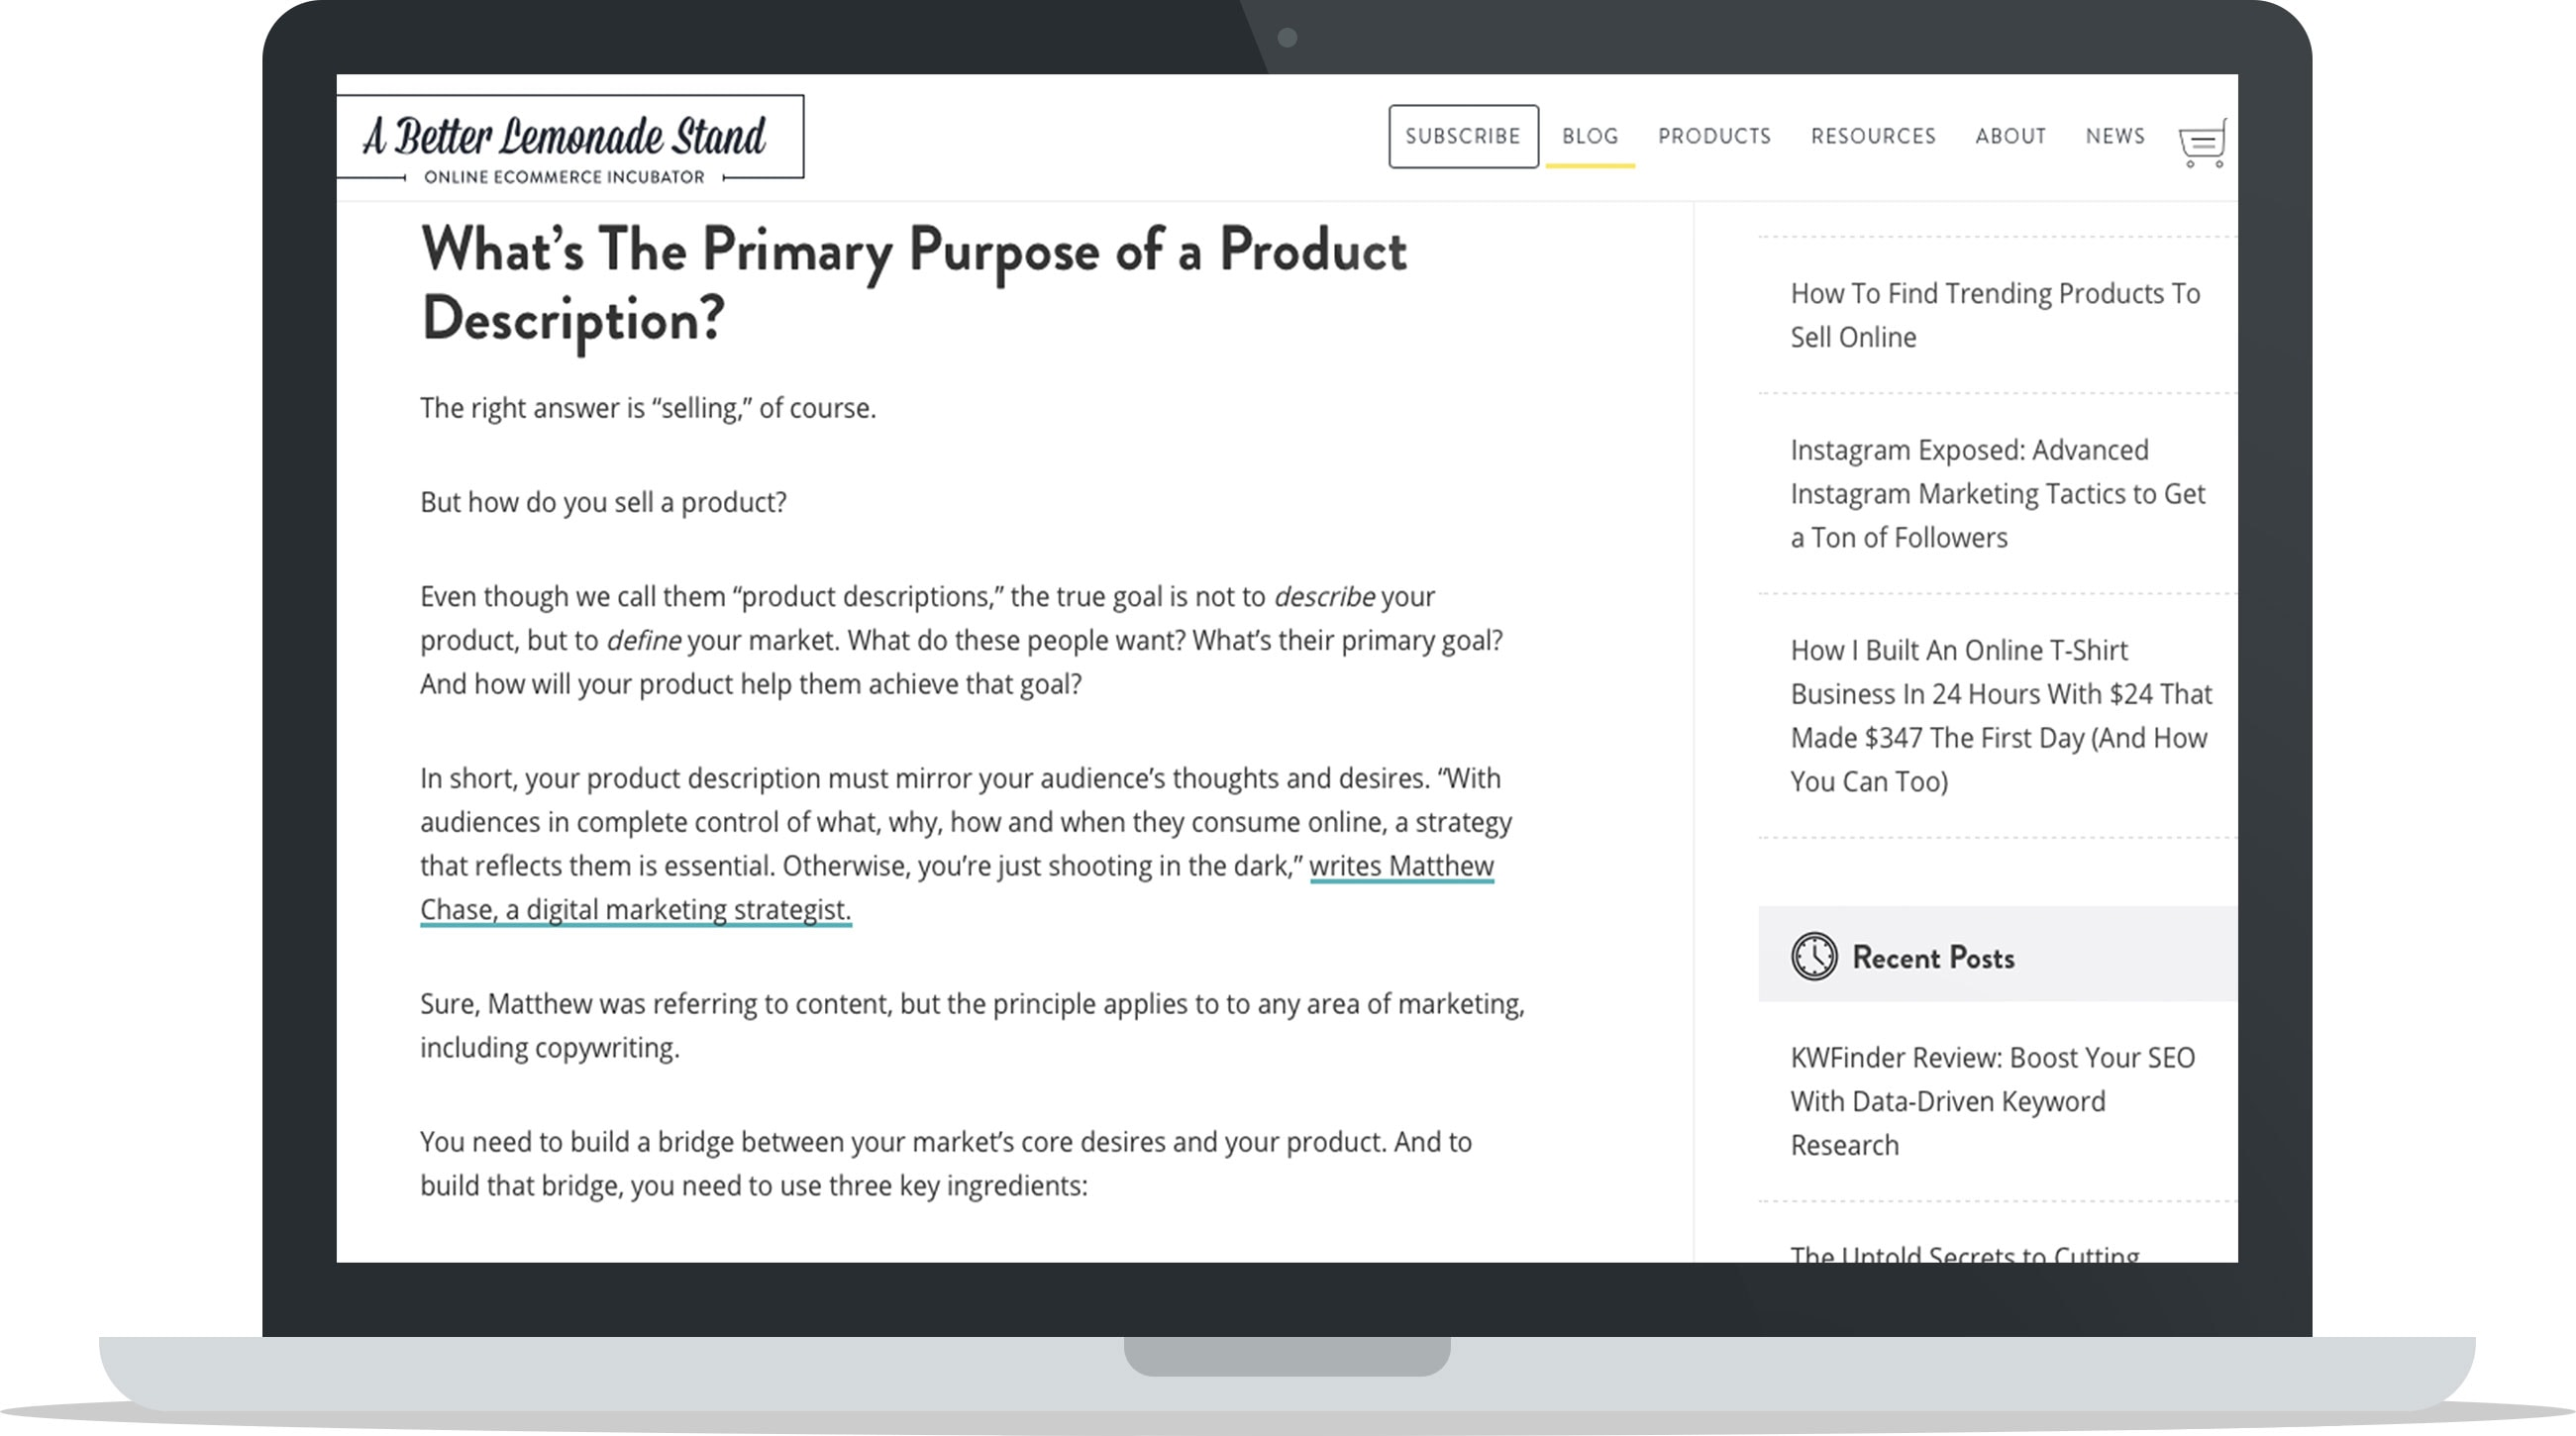 How to Write Persuasive Product Description - The Primary Purpose